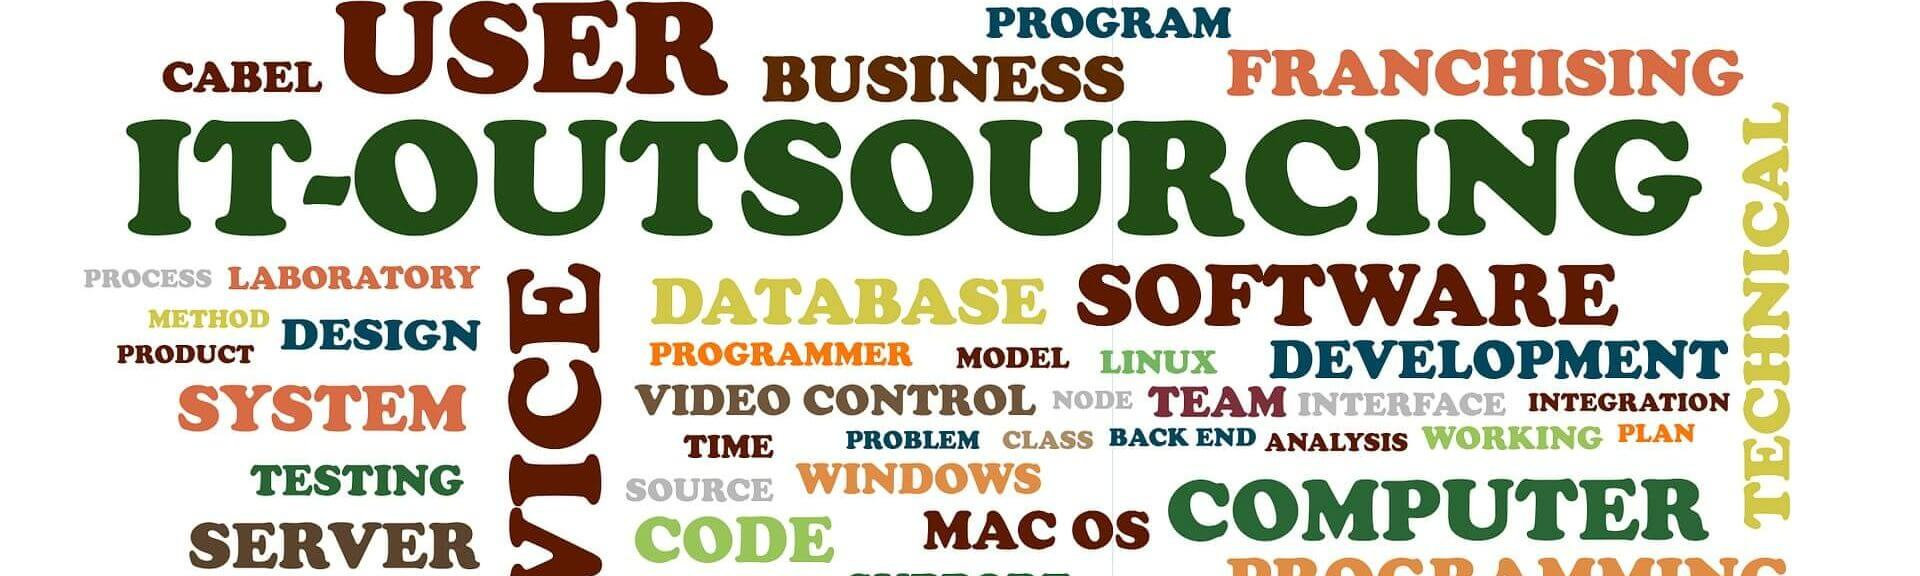 Pros and cons of outsourcing essay